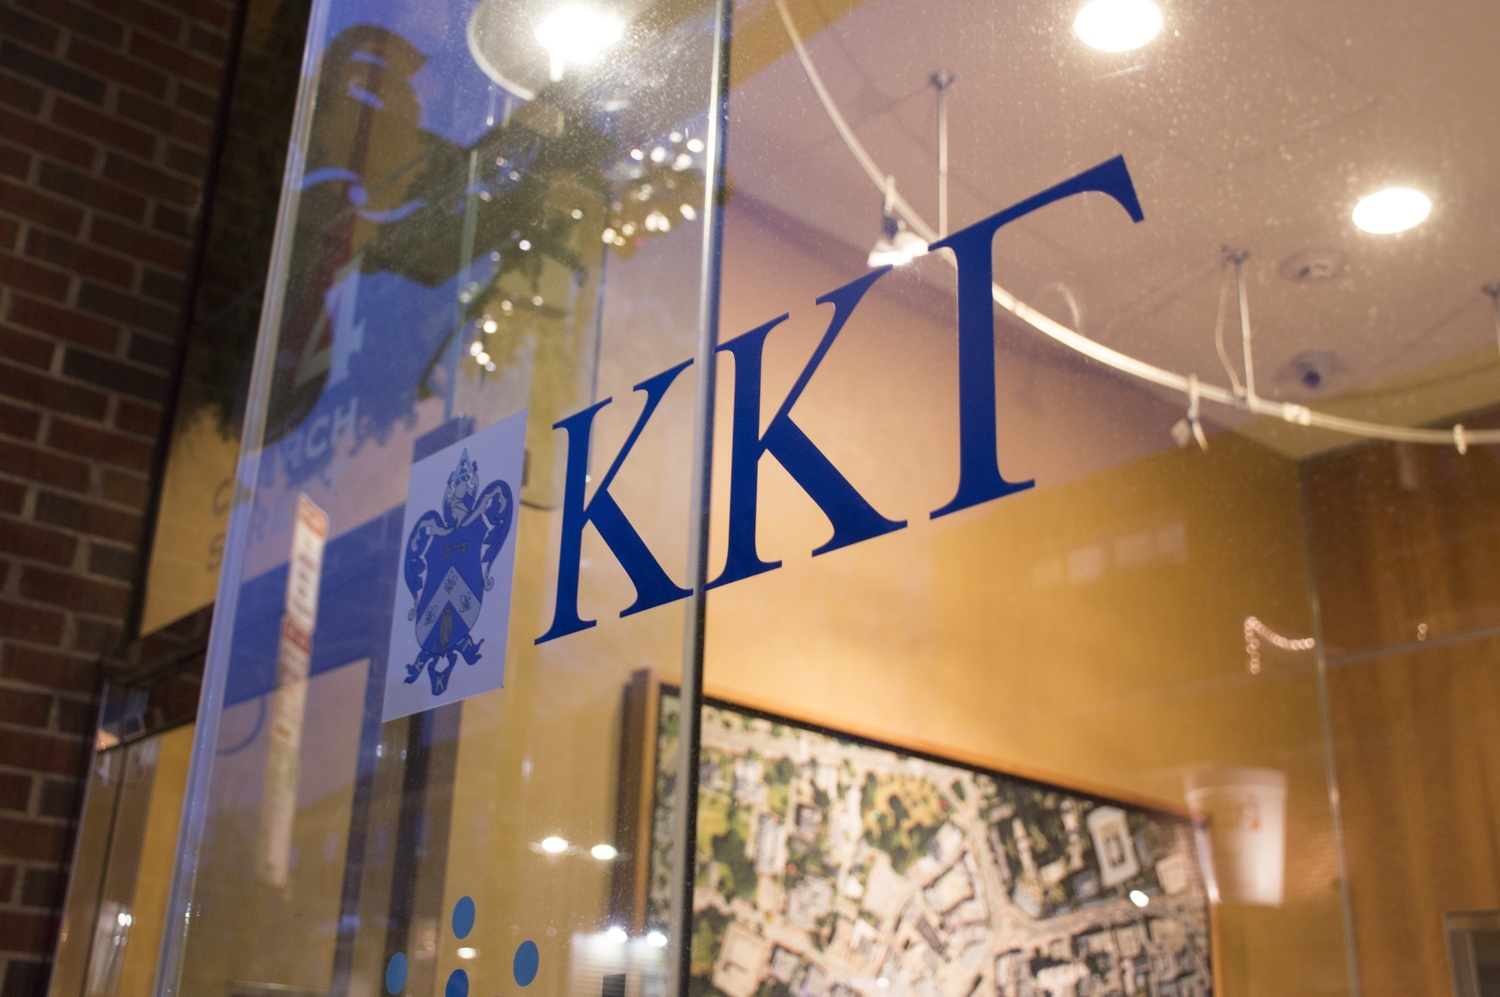 Harvard's Kappa Kappa Gamma chapter has a location on Church St. in Harvard Square.